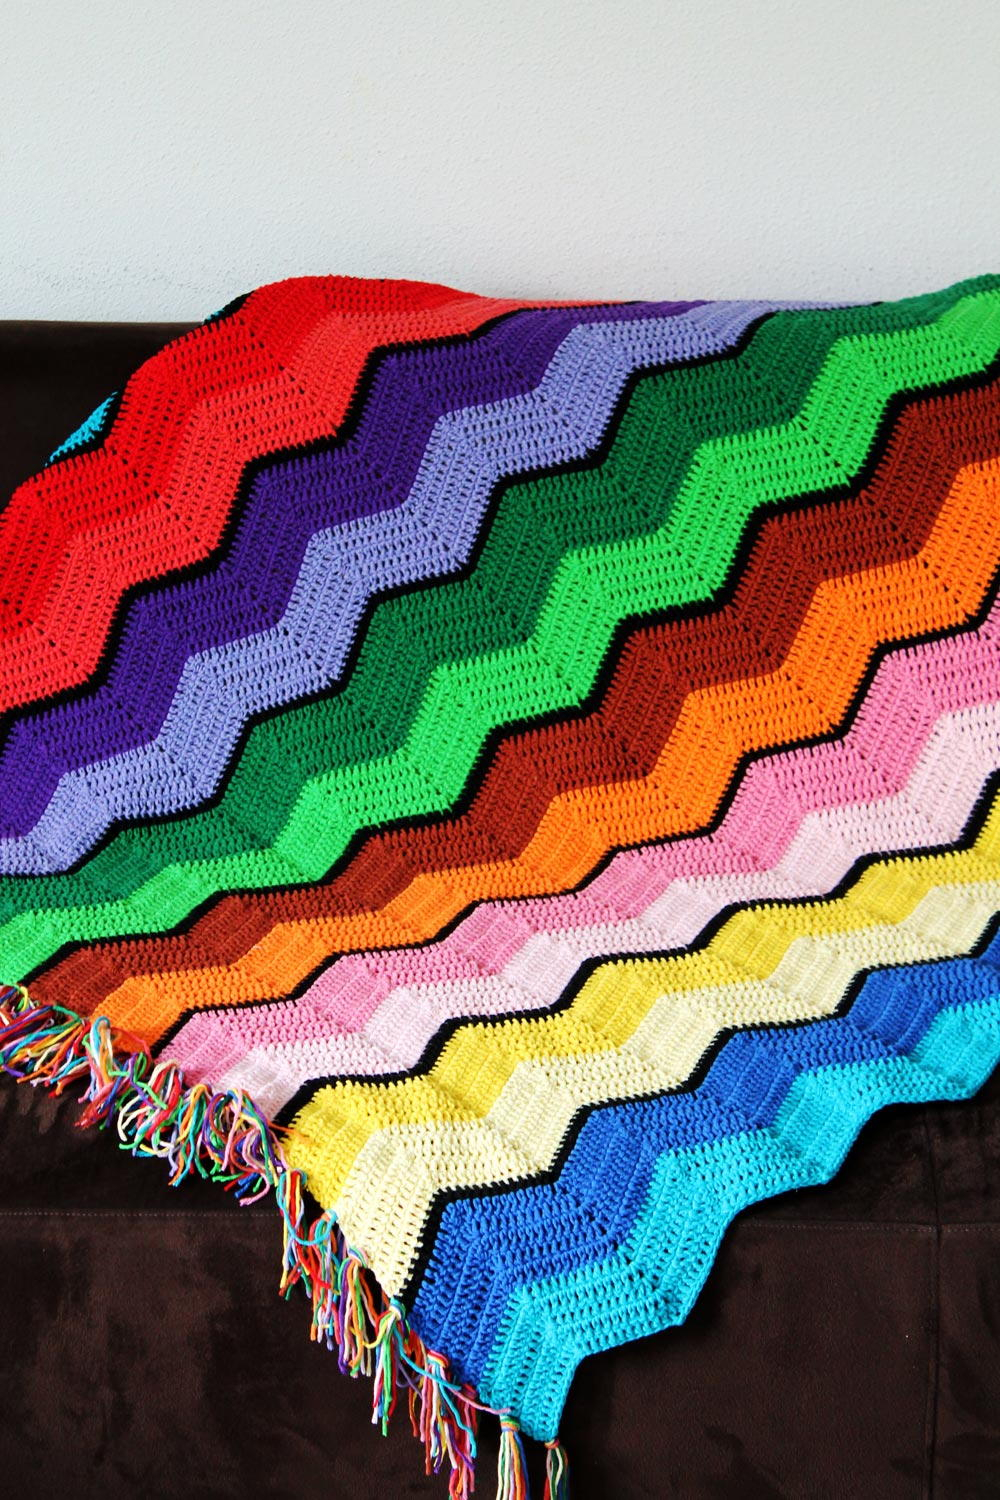 51 free crochet blanket patterns for beginners favecrafts retro ripple crochet afghan pattern bankloansurffo Images